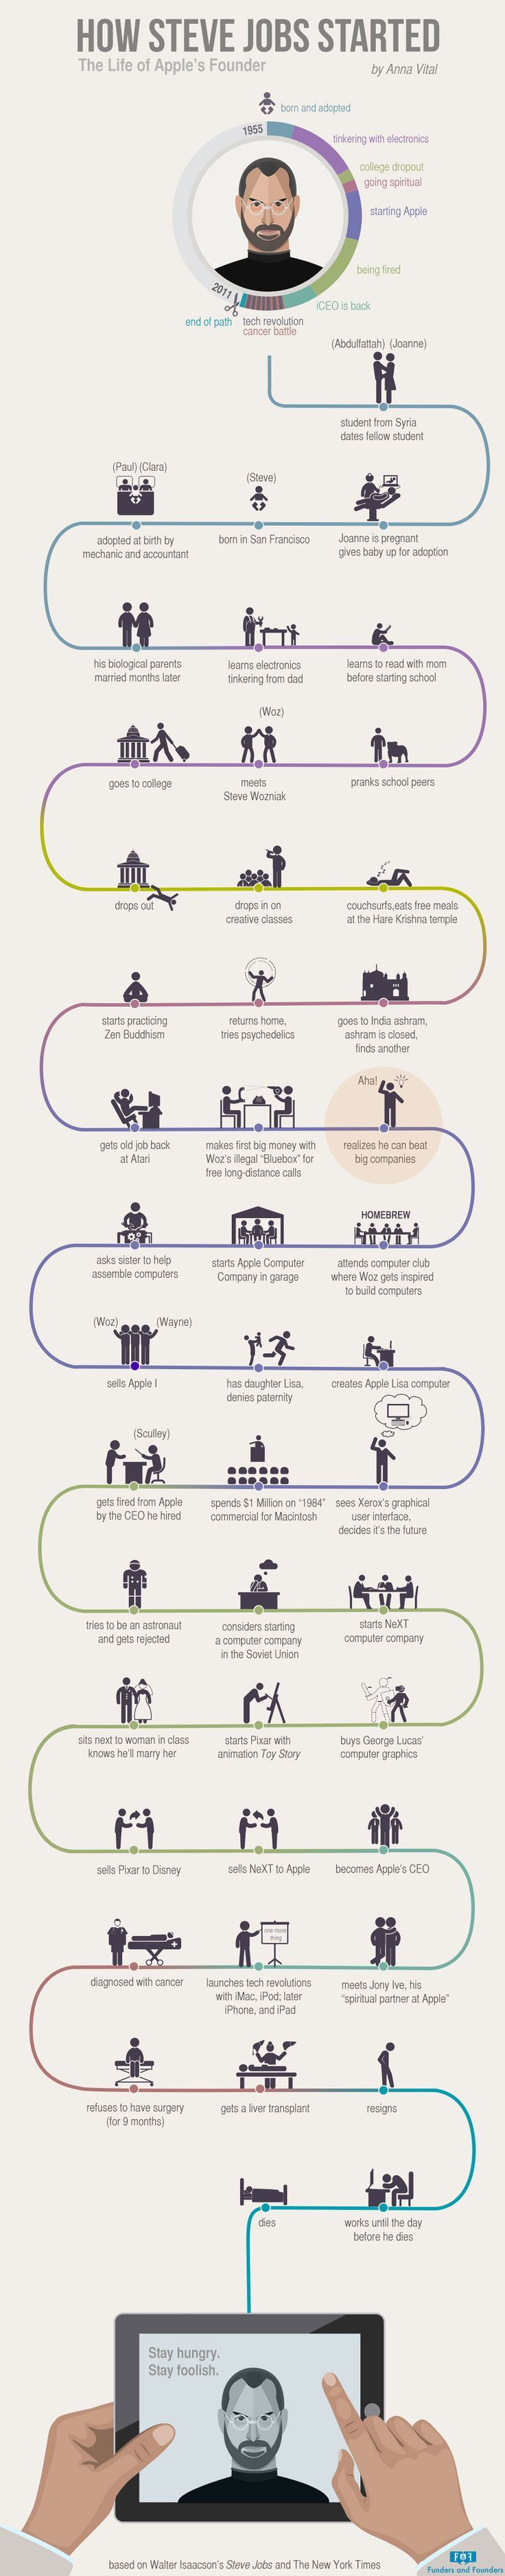 Infographic Layout: How to Portray History Using Timelines